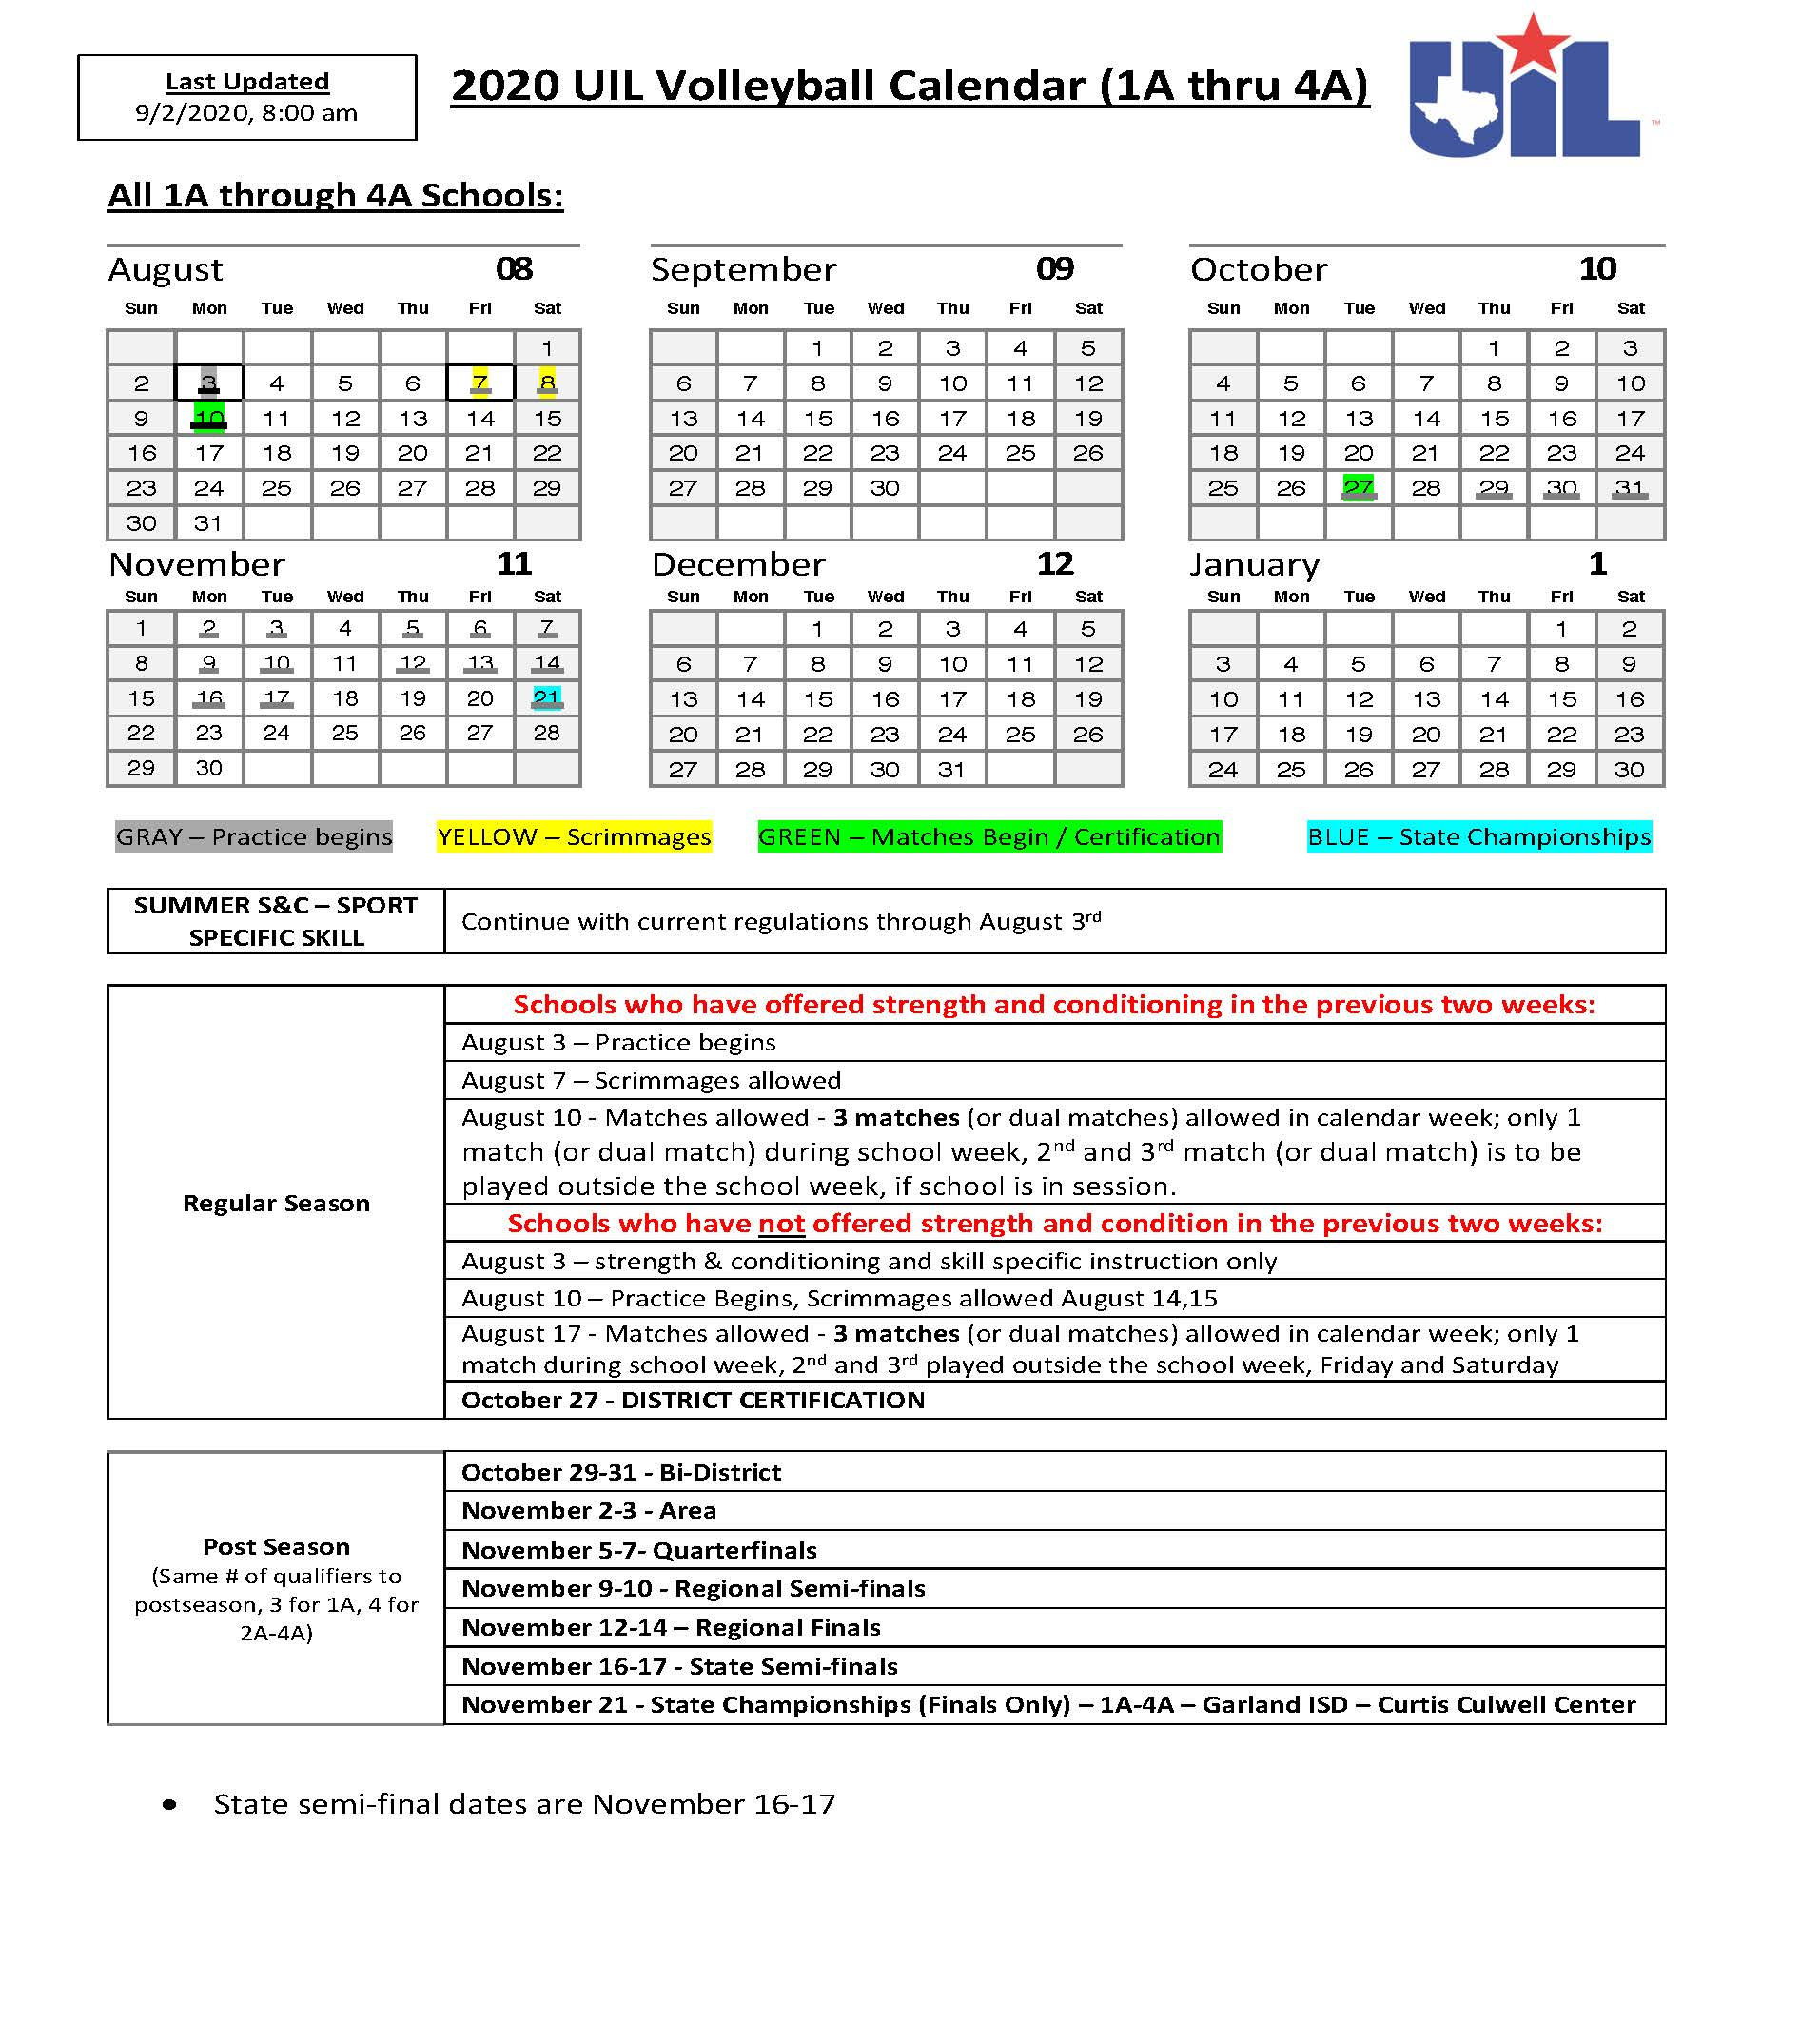 2020 21 Volleyball Covid Calendar And Update University Interscholastic League Uil